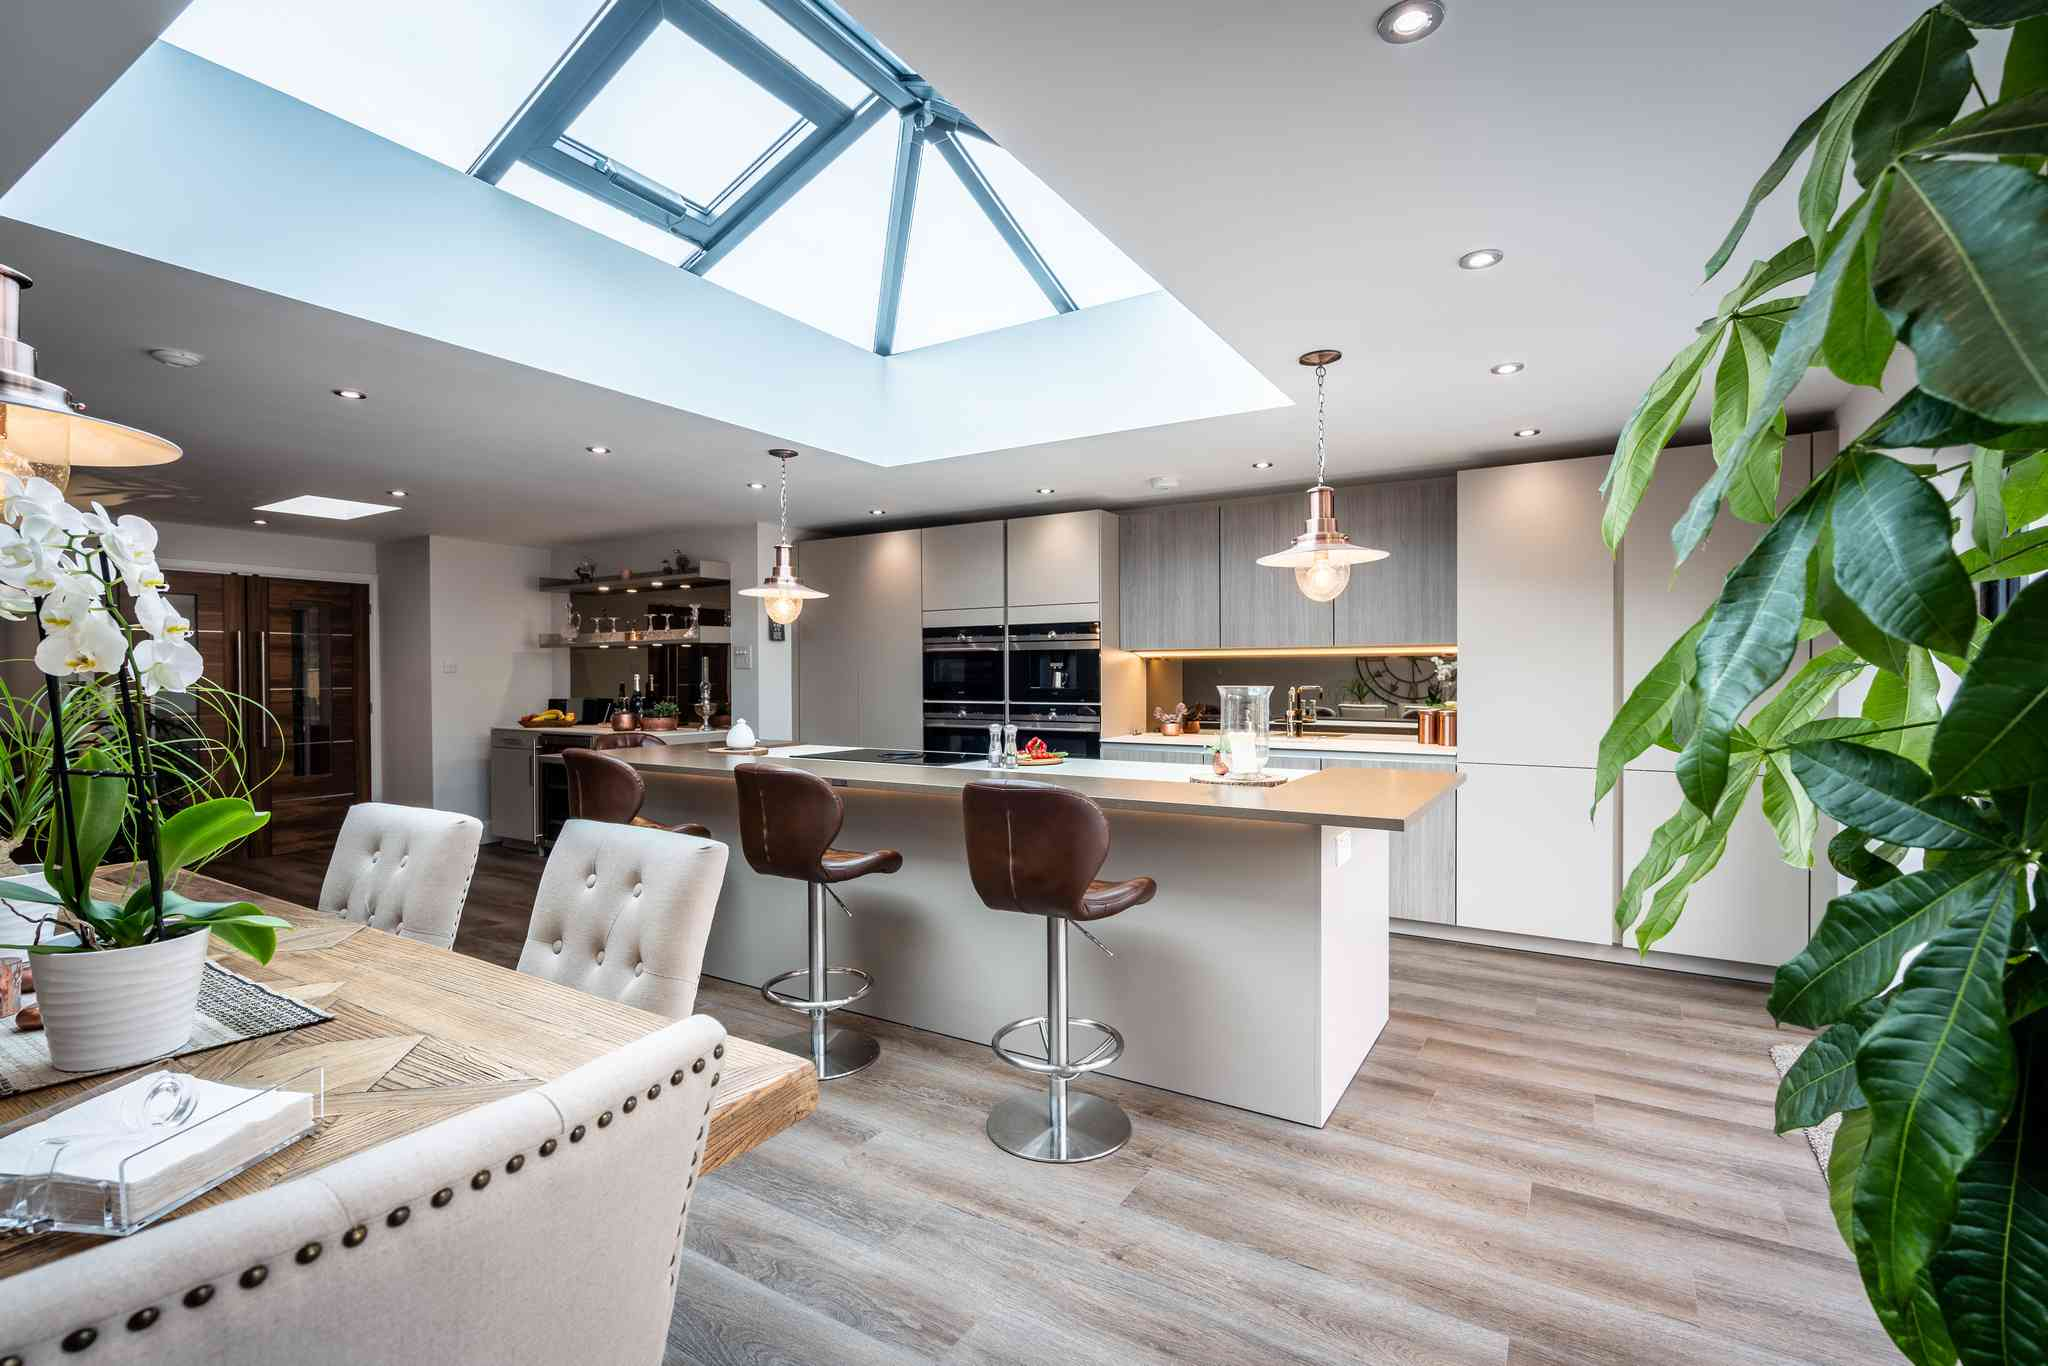 Modern kitchen with triangle rule